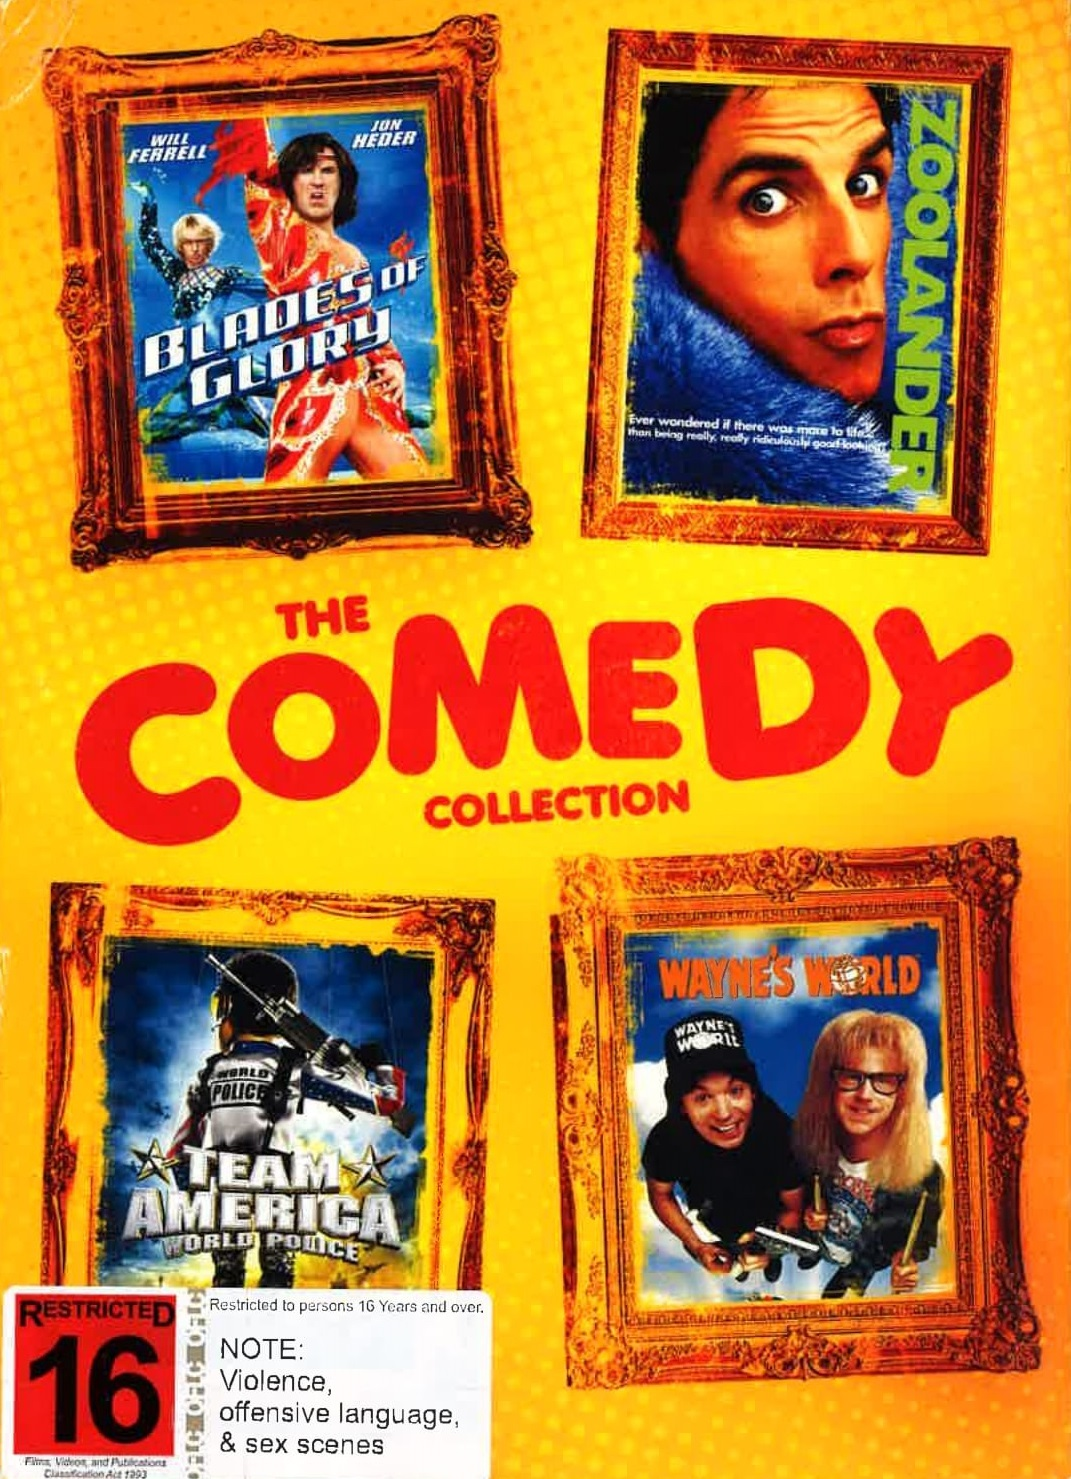 The Comedy Collection on DVD image